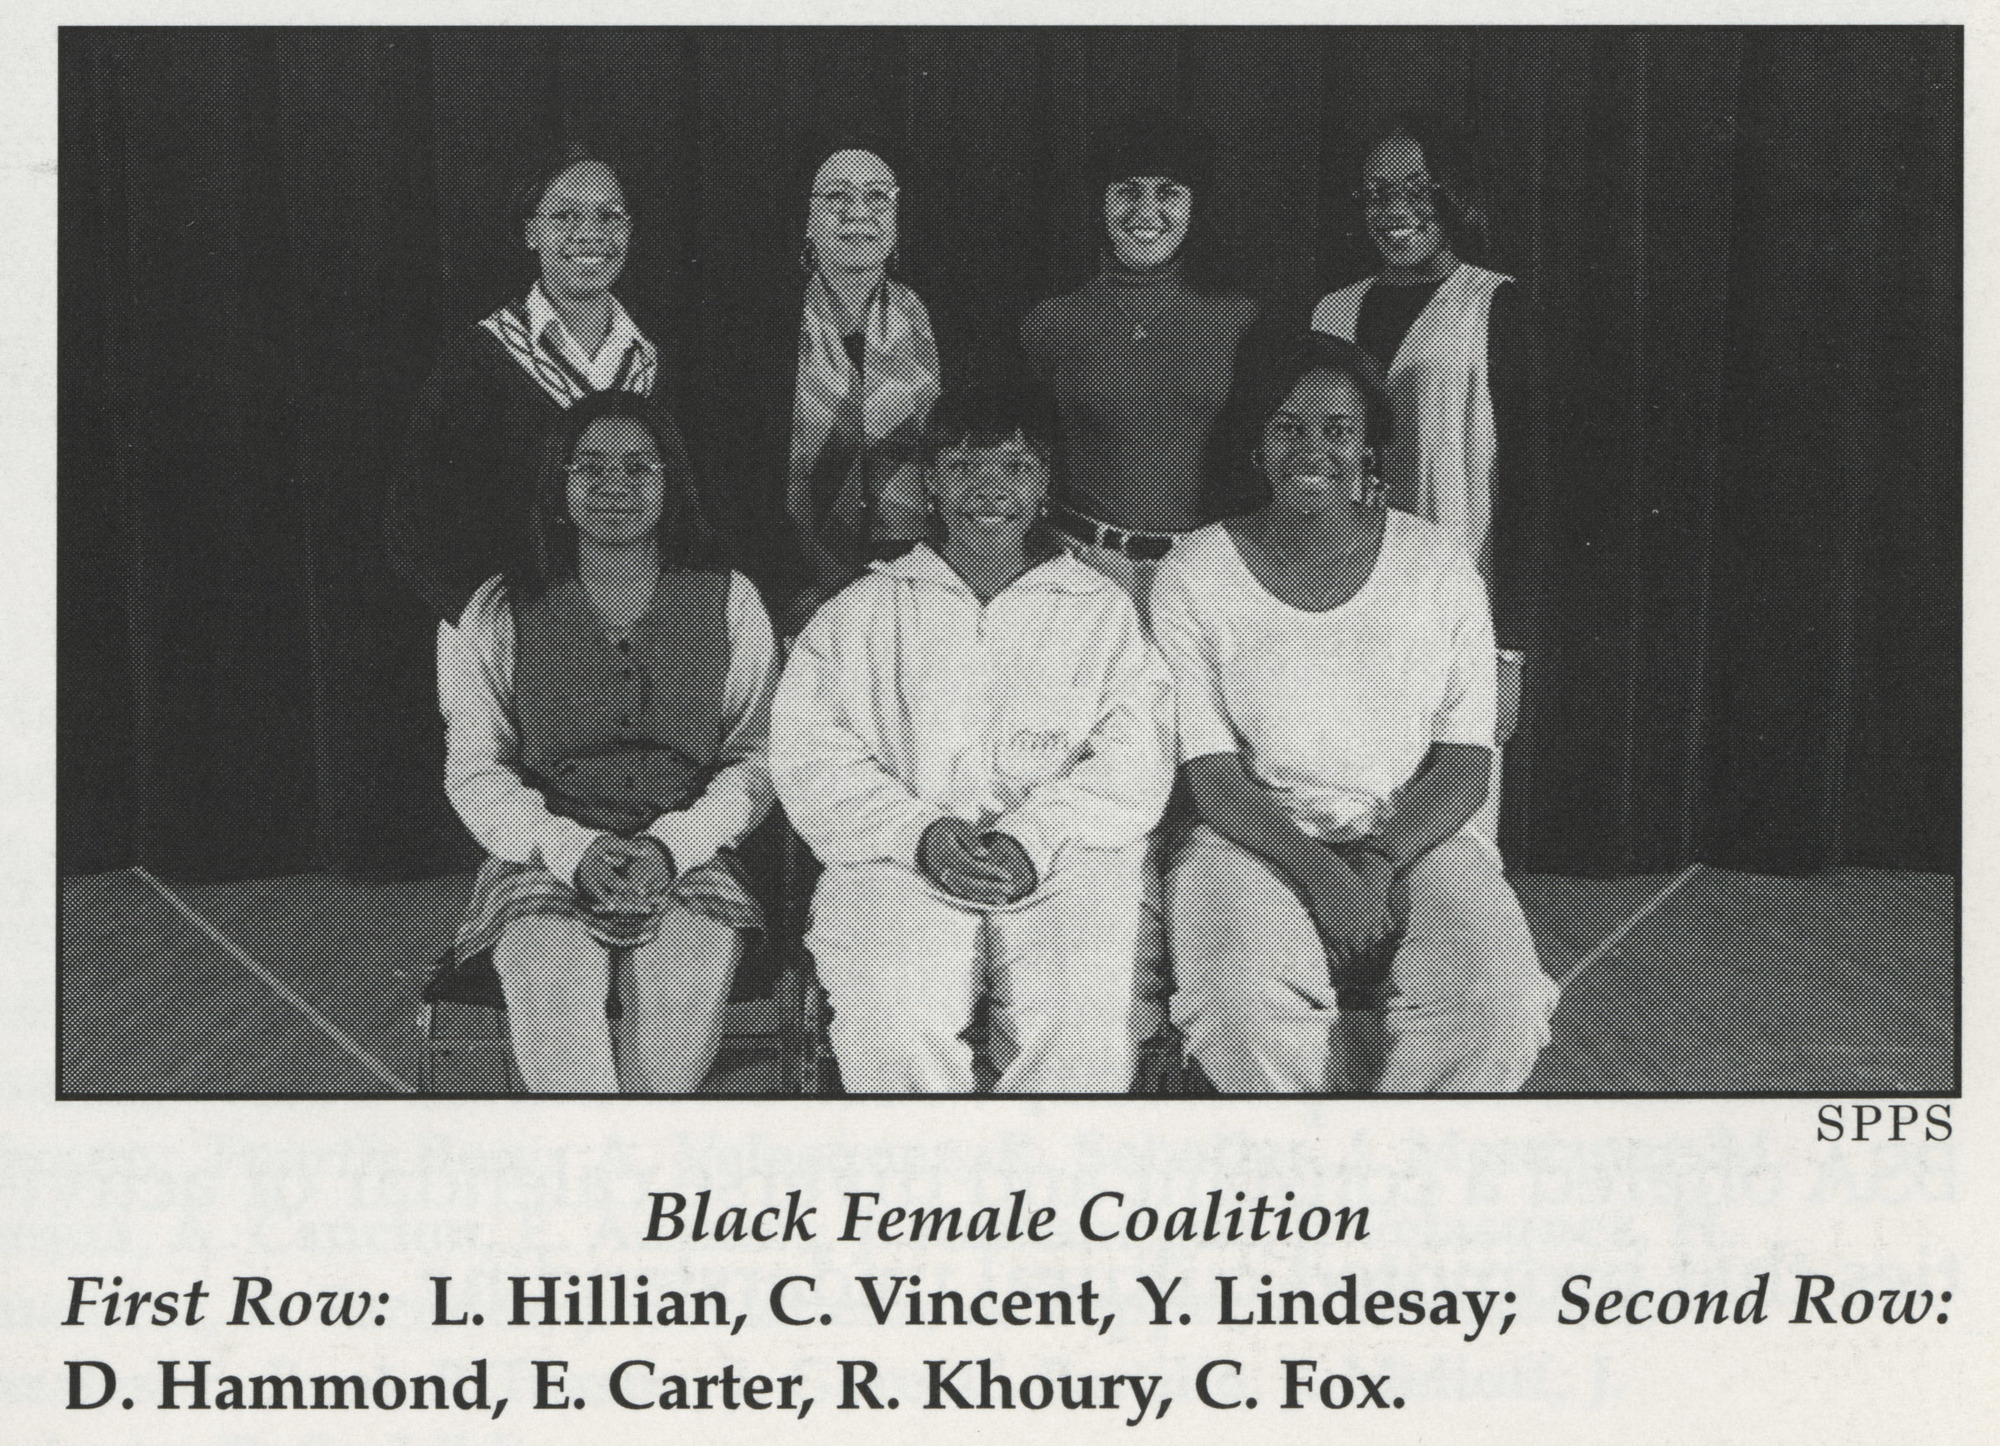 http://spec.lib.vt.edu/pickup/Omeka_upload/Bugle1997_pg159_BlackFemaleCoalition.jpg